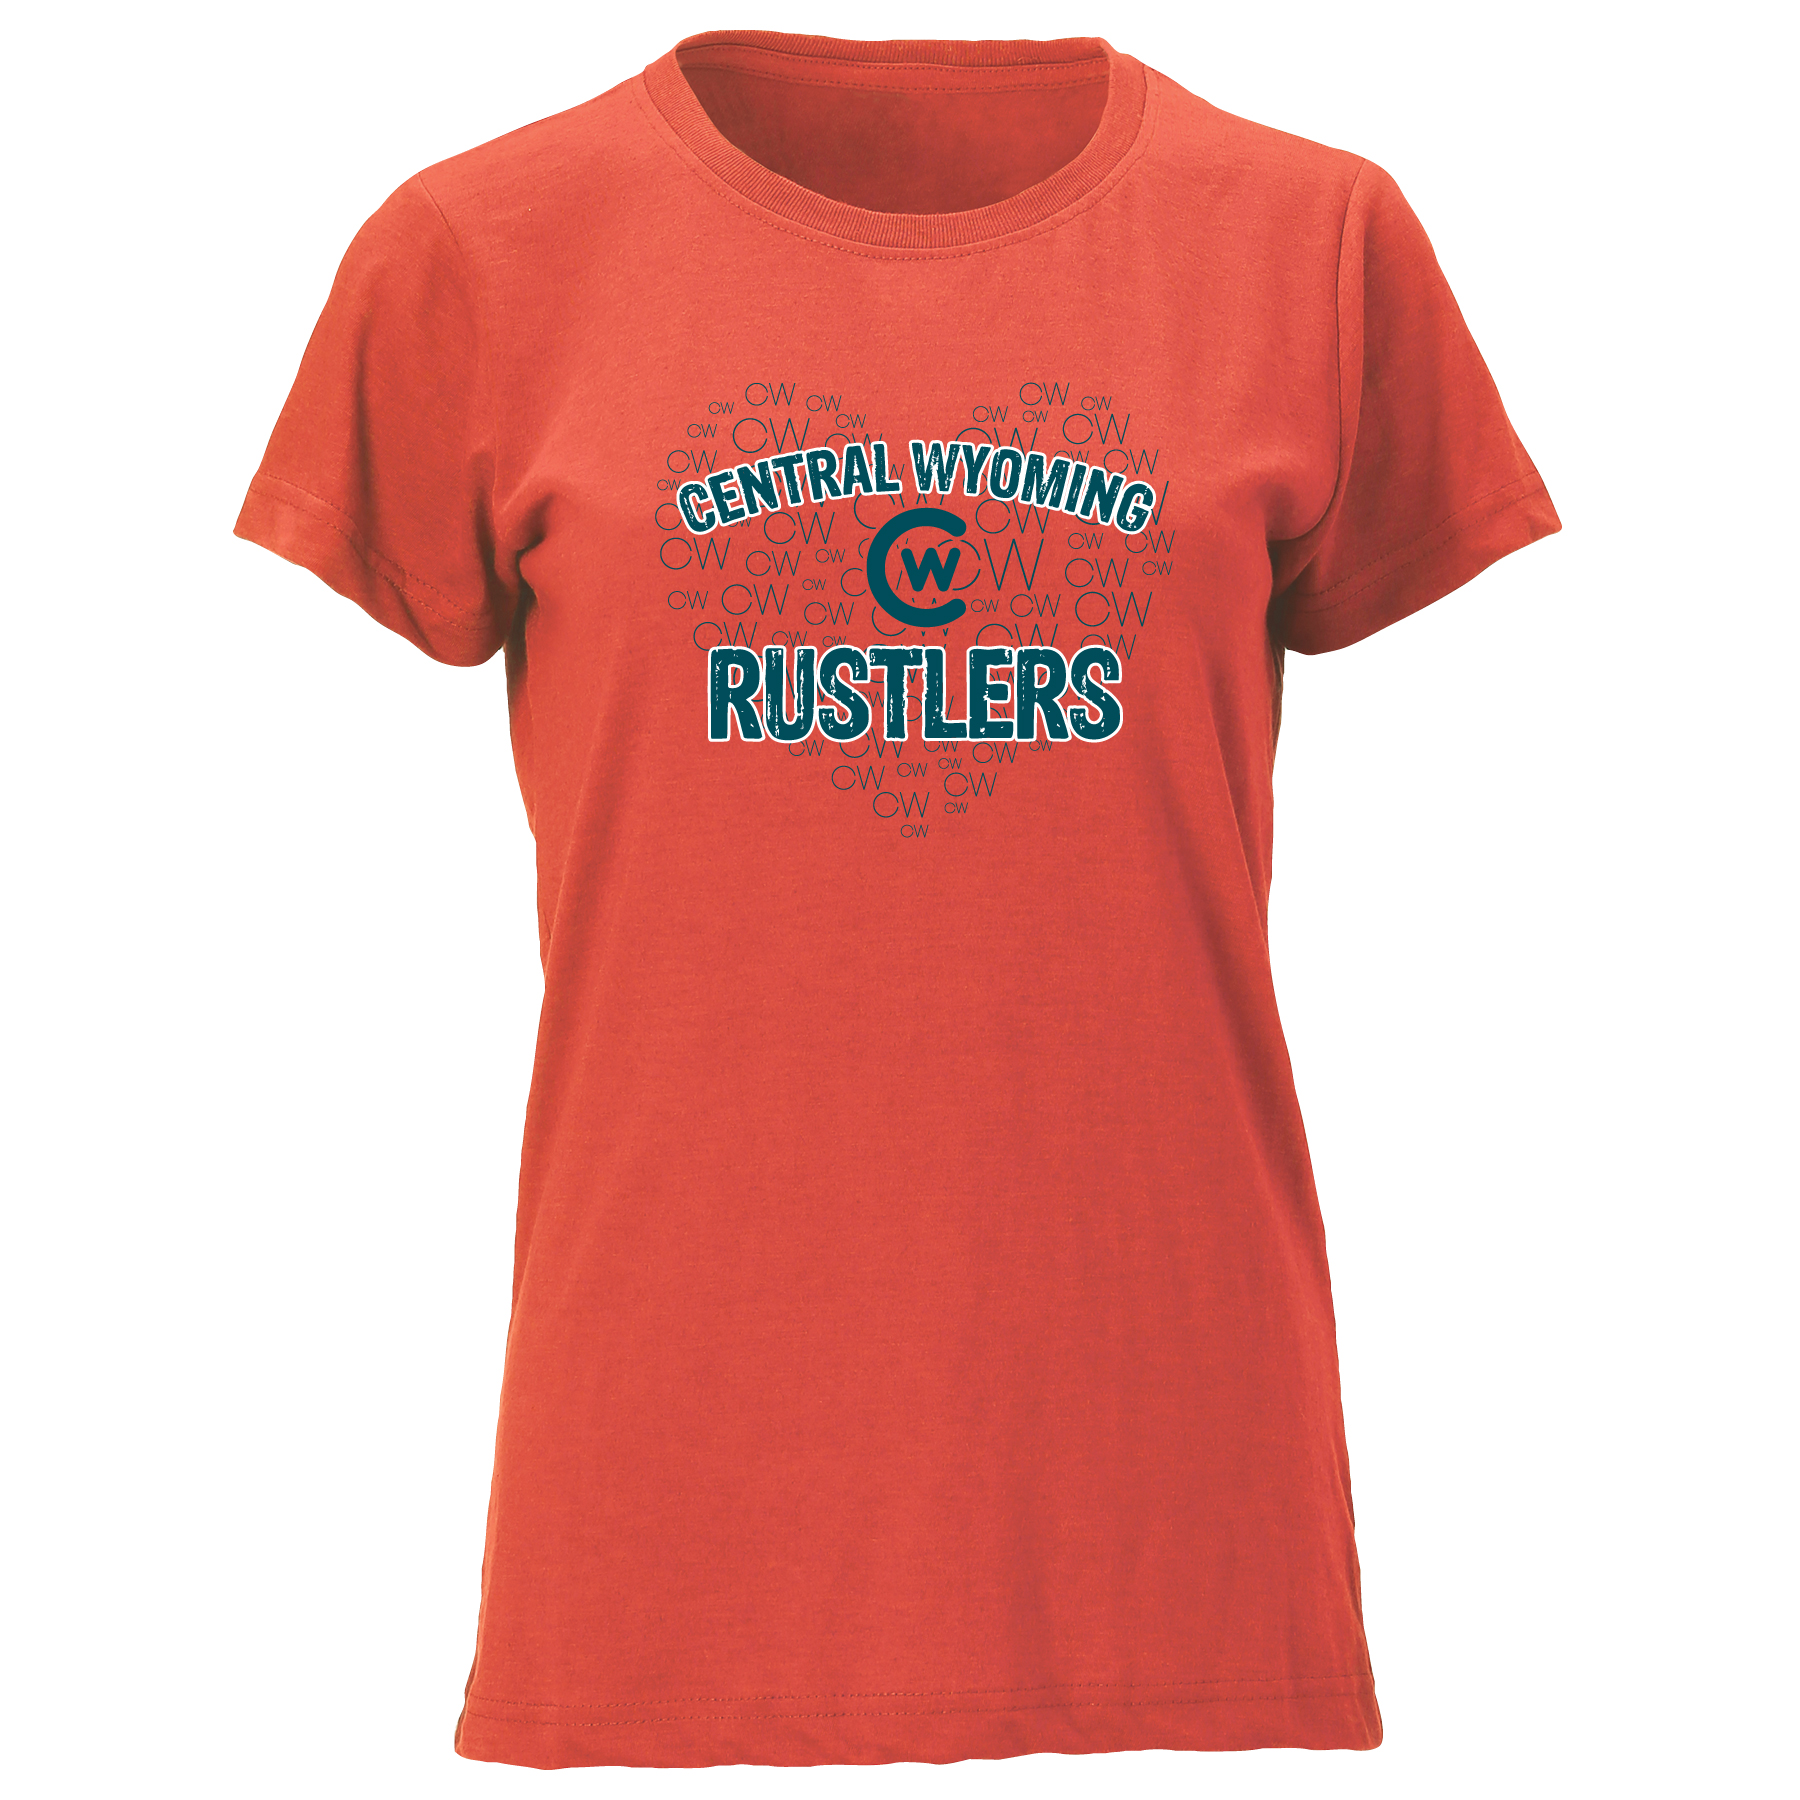 CW Heart Central Wyoming Rustlers T-Shirt